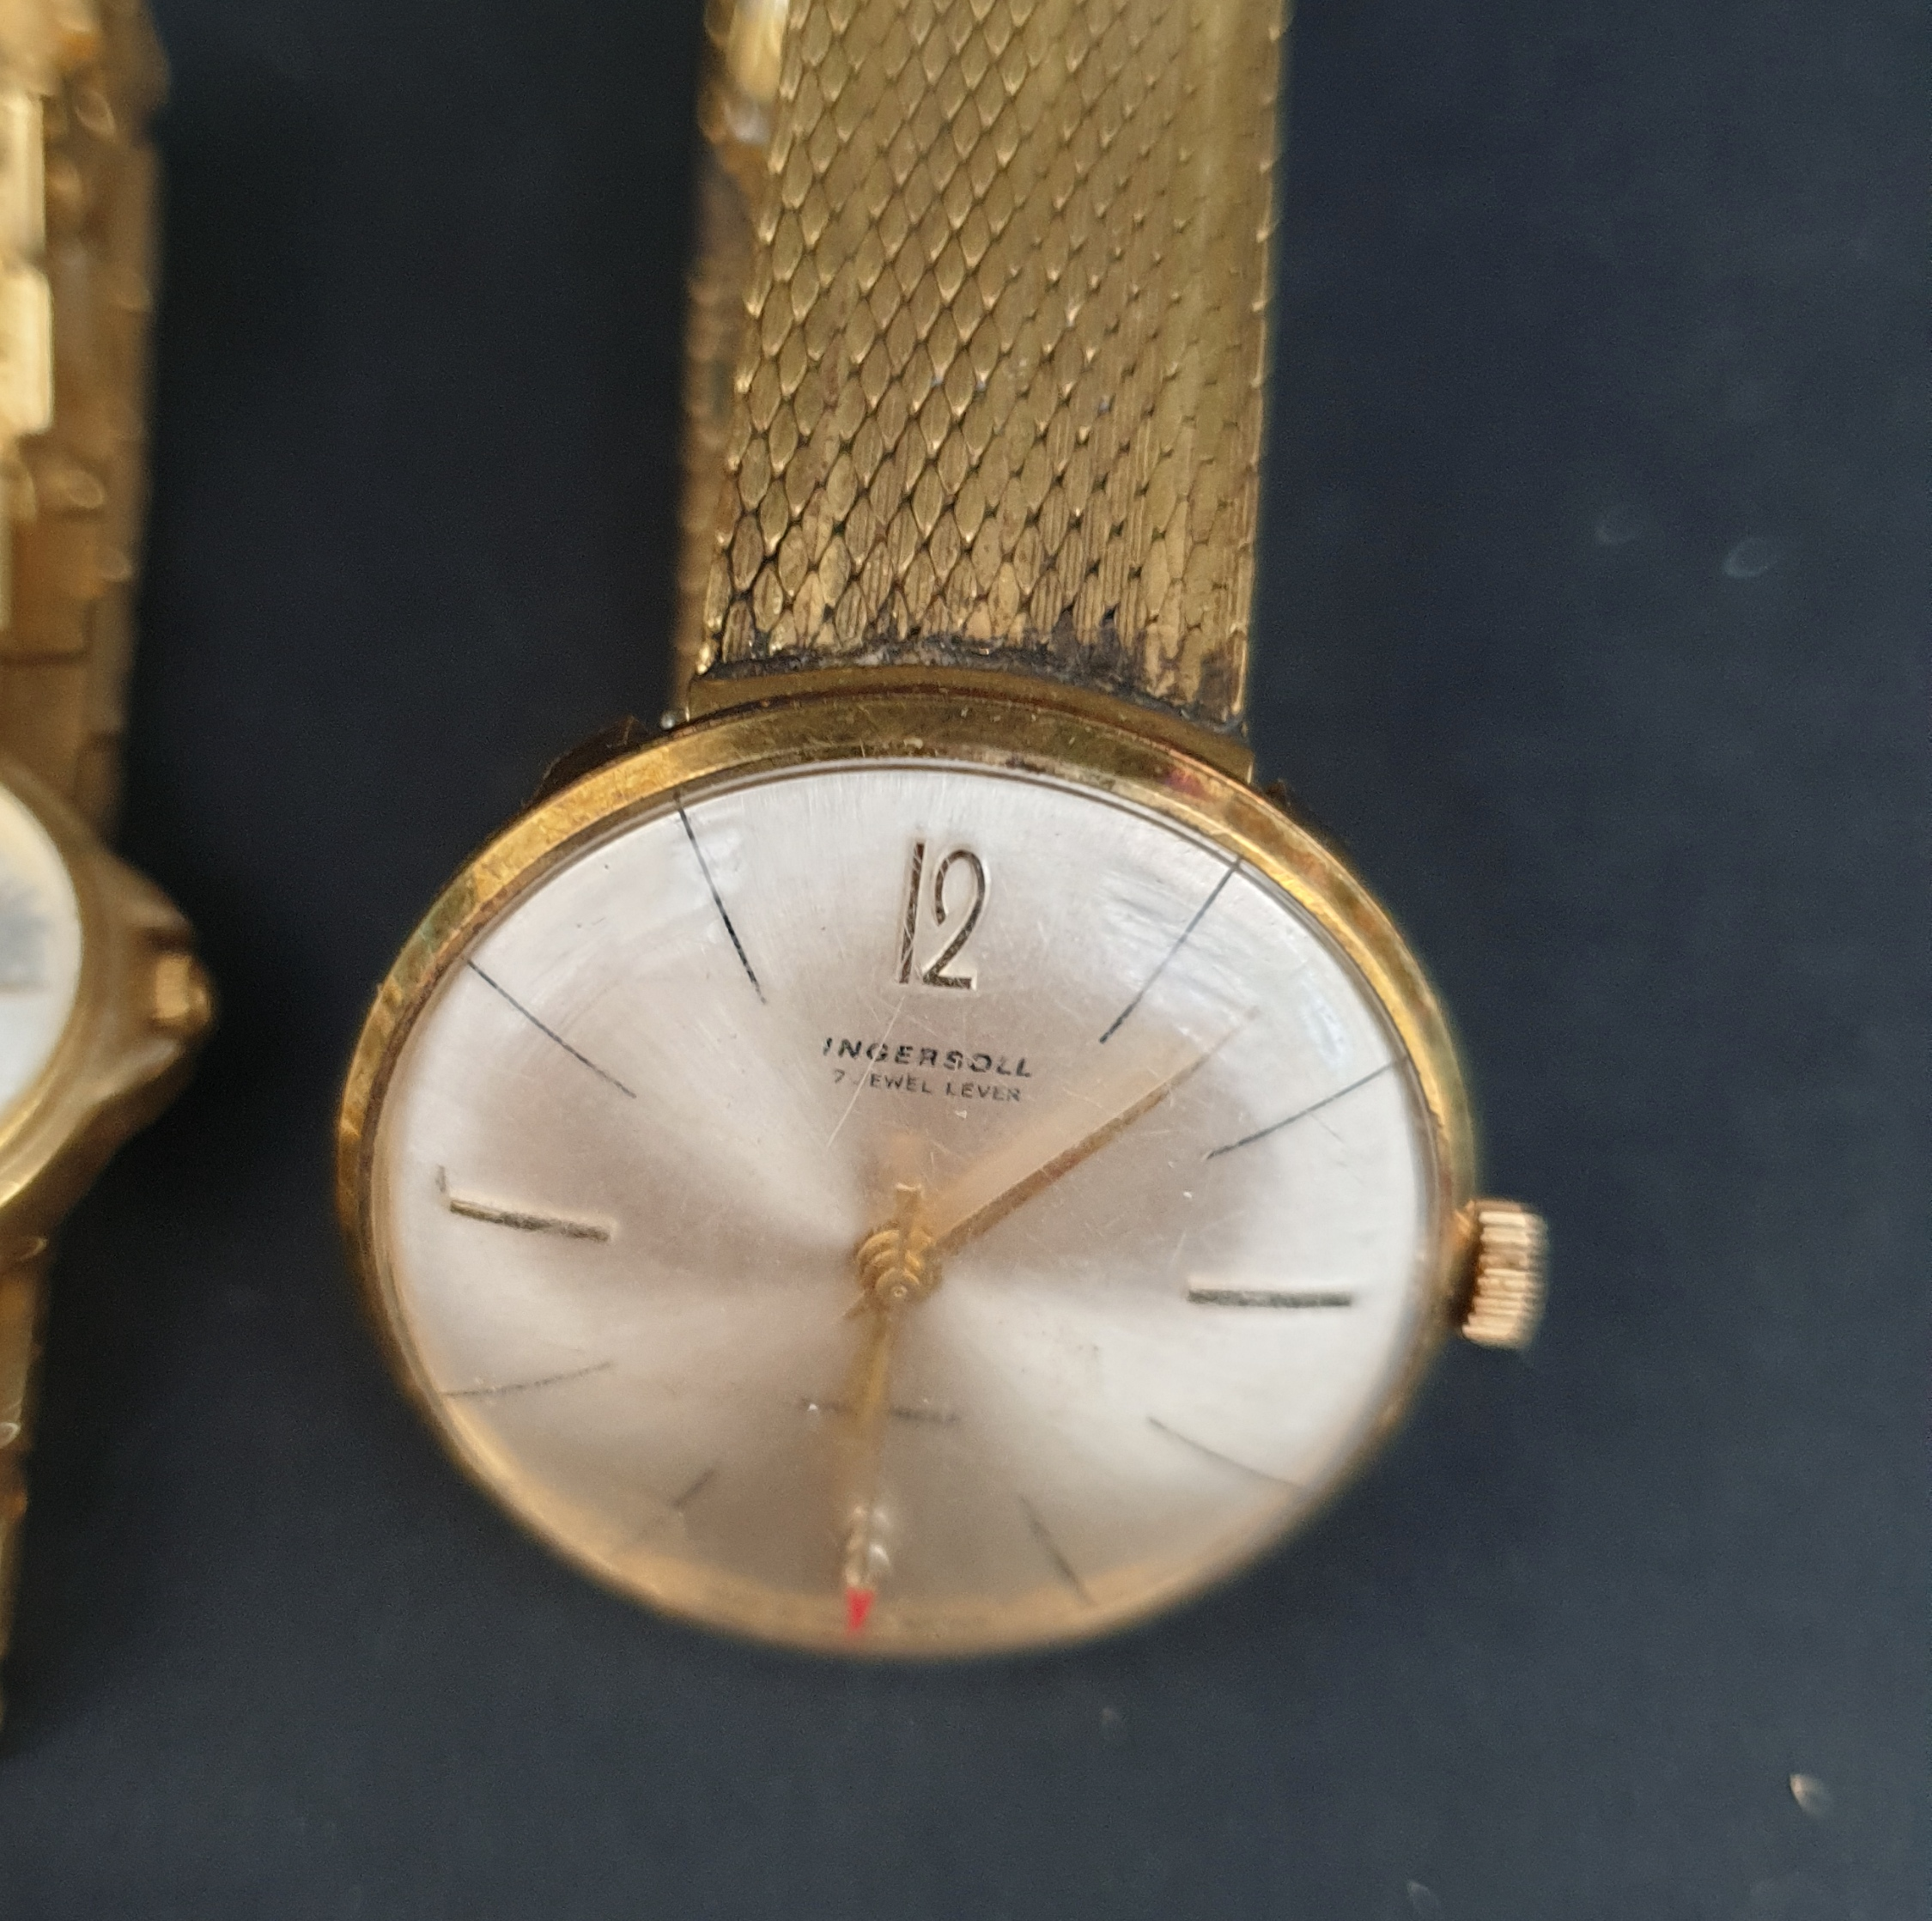 Parcel of 6 Assorted Watches Includes Ingersoll - Image 2 of 3